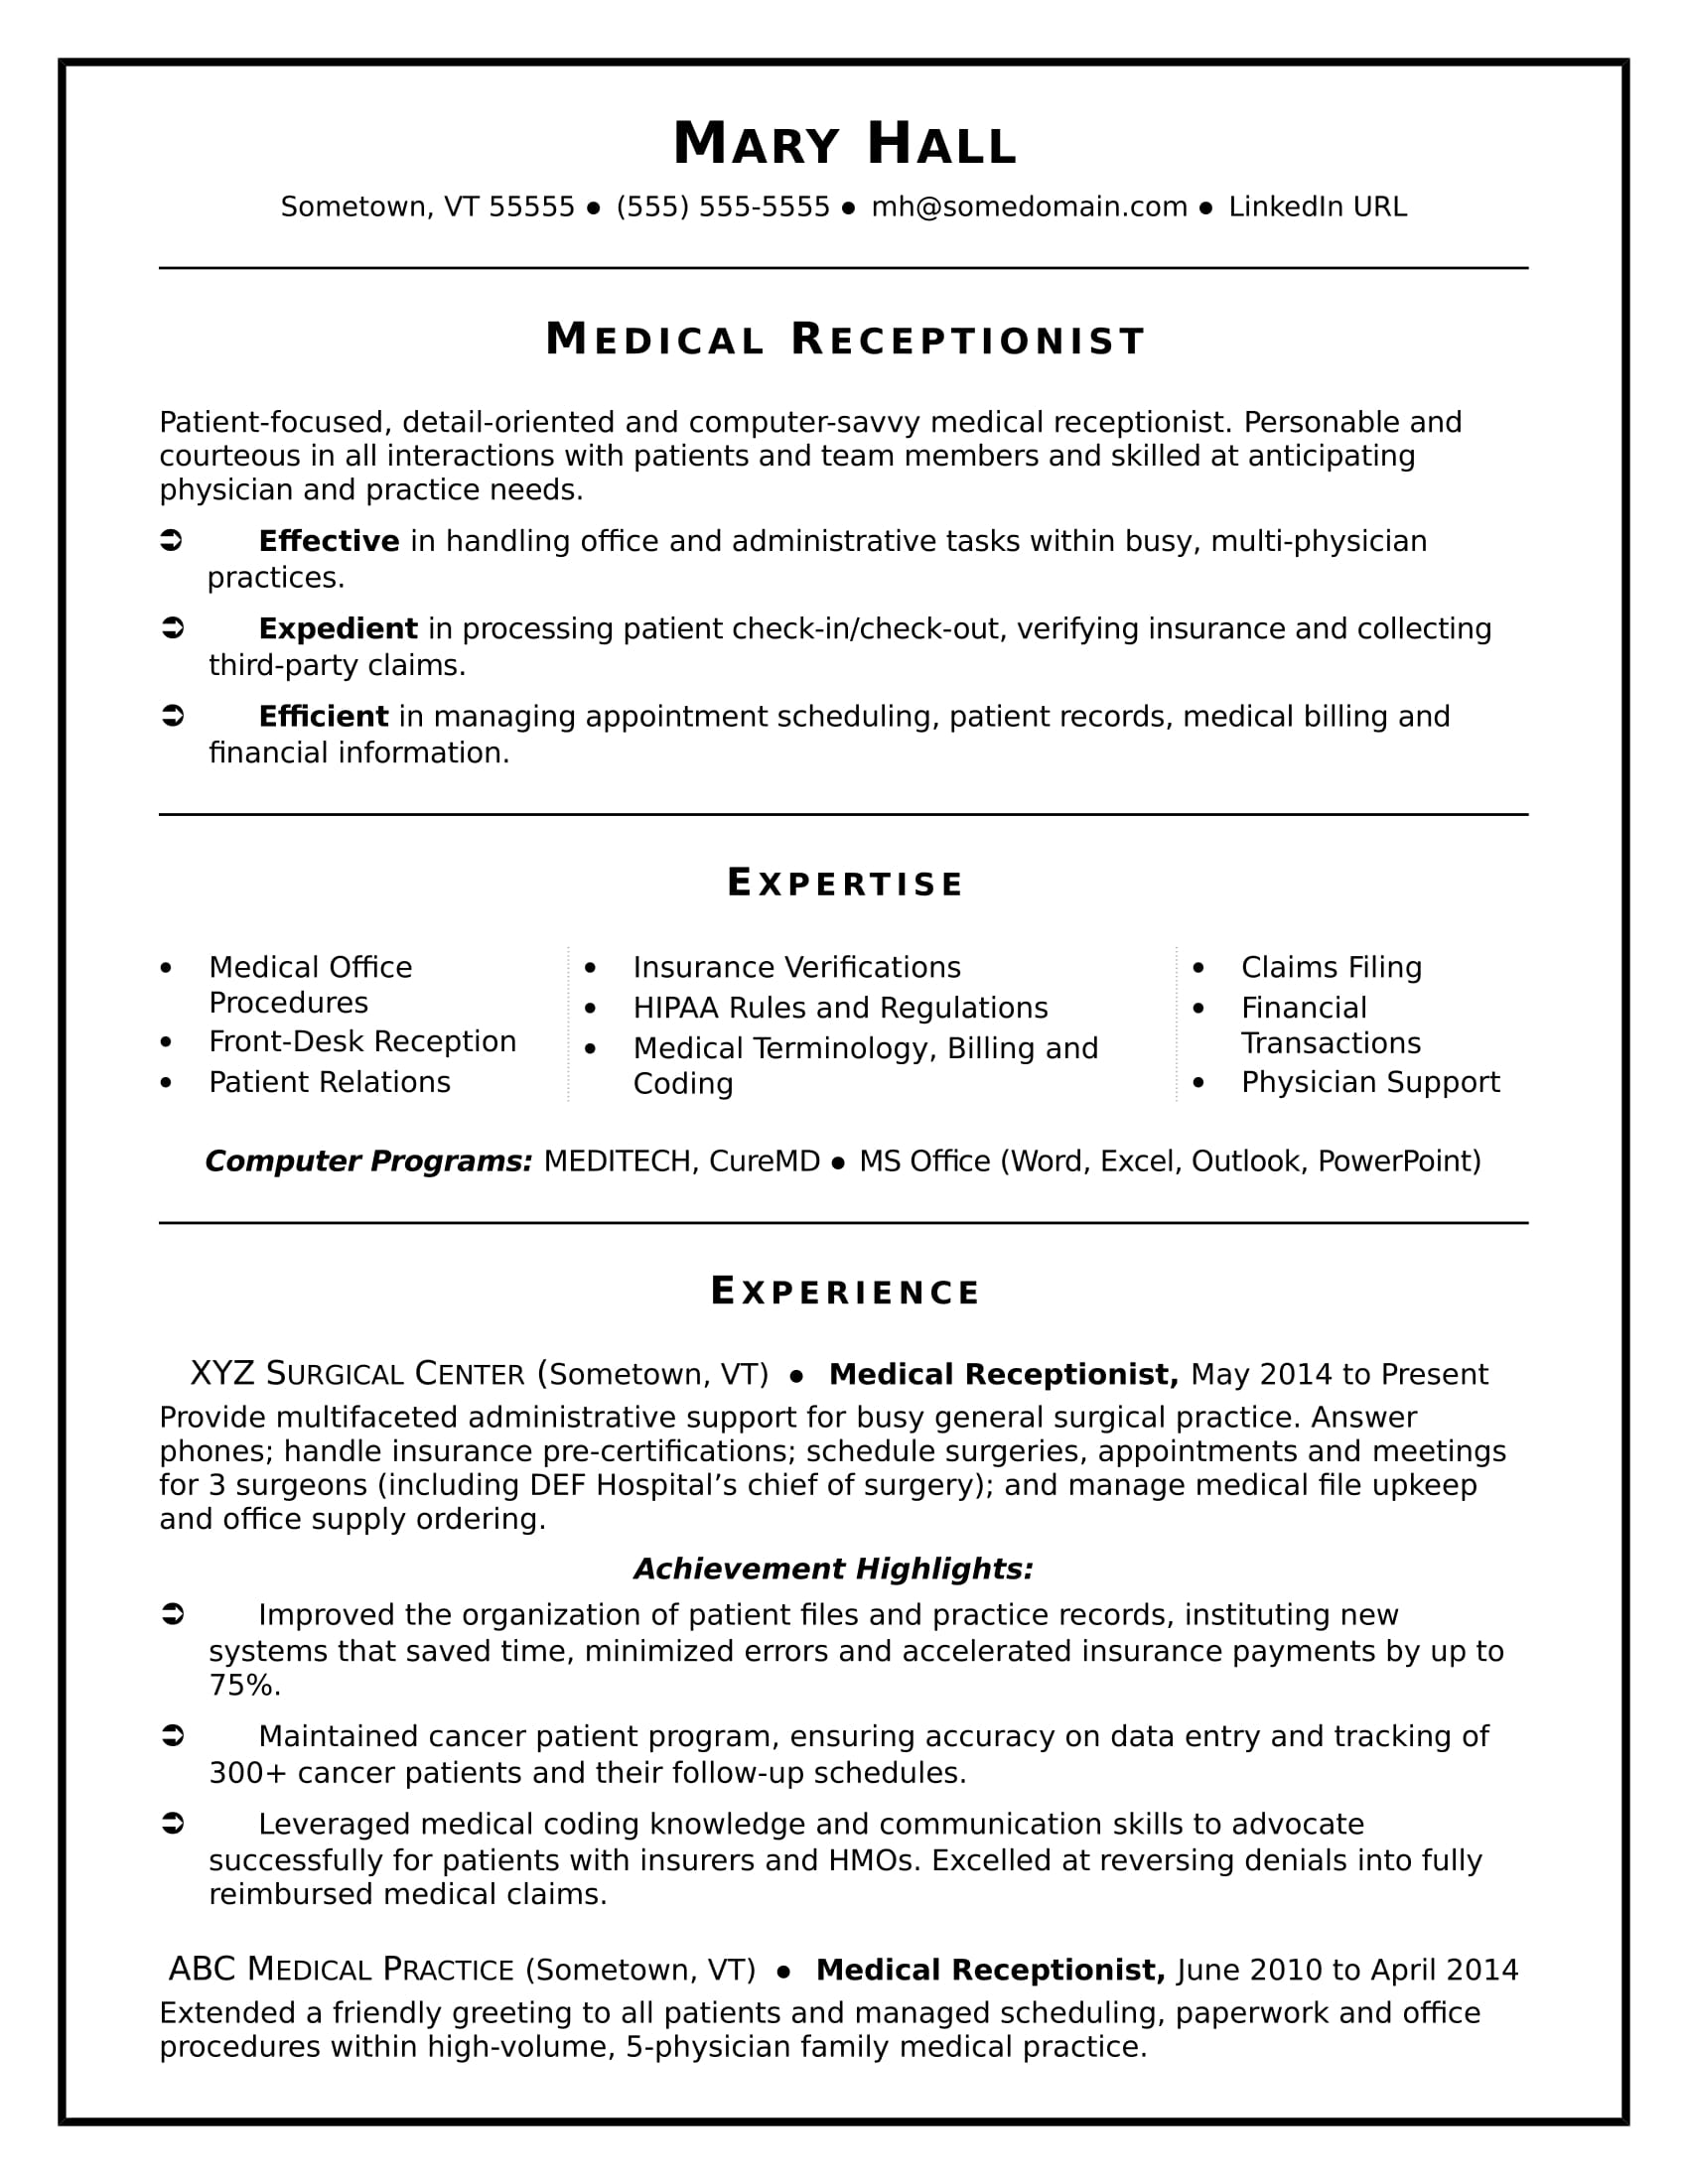 Attractive Medical Receptionist Resume Sample